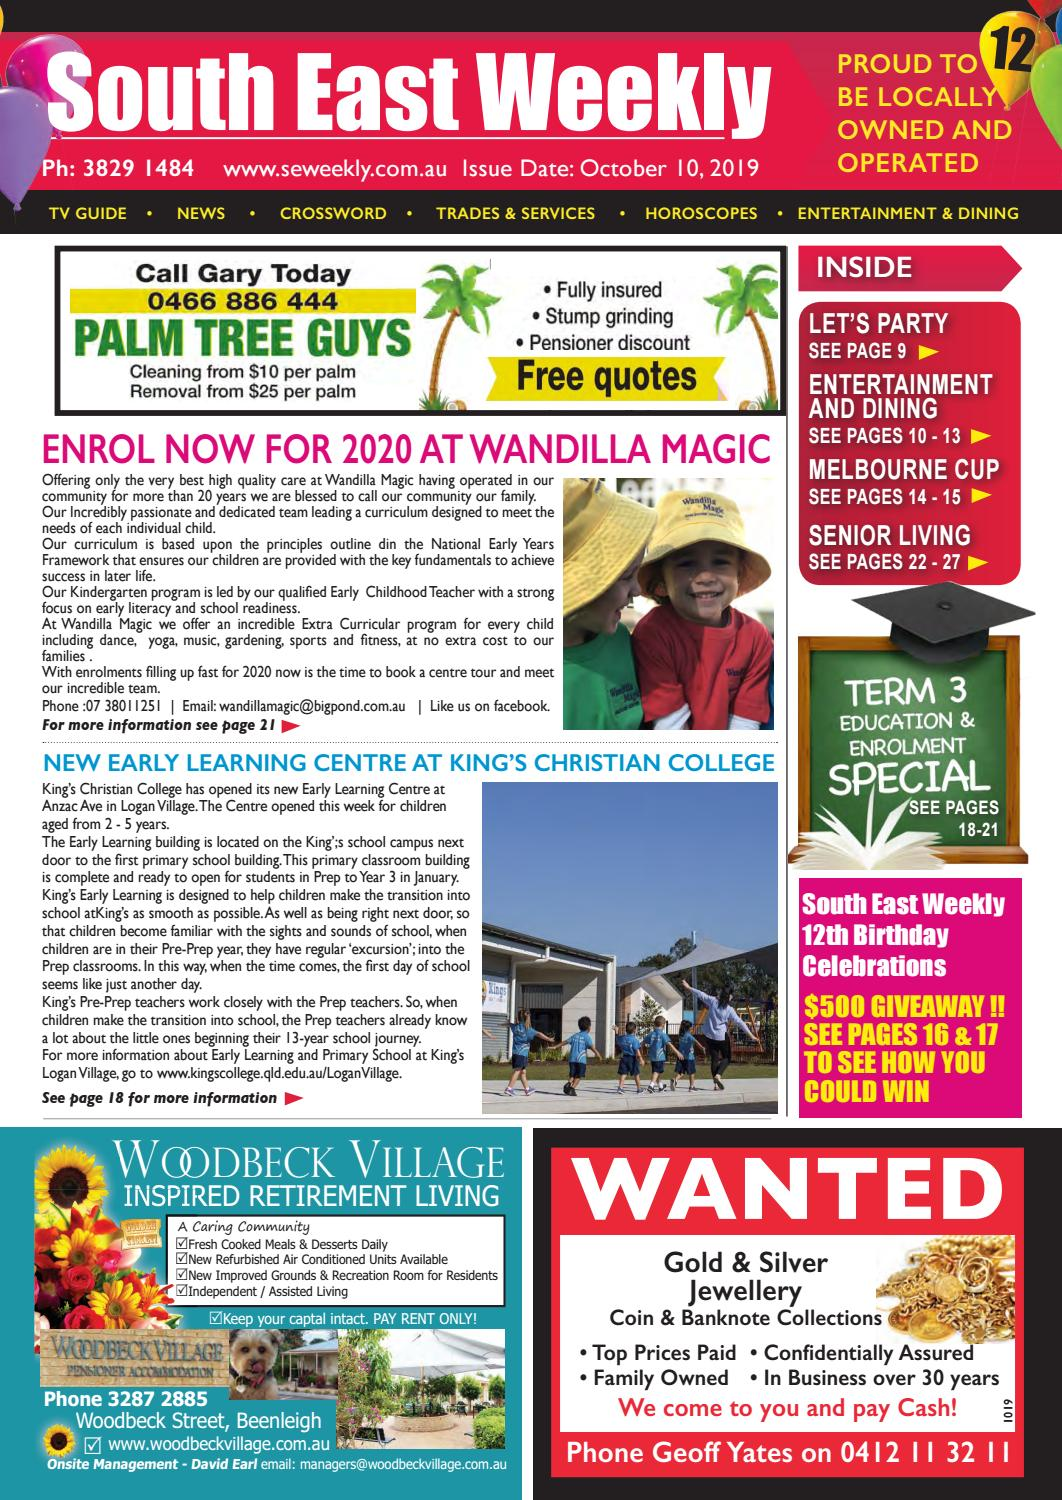 South East Weekly Magazine - October 10, 2019 by South East Weekly Magazine  - issuu